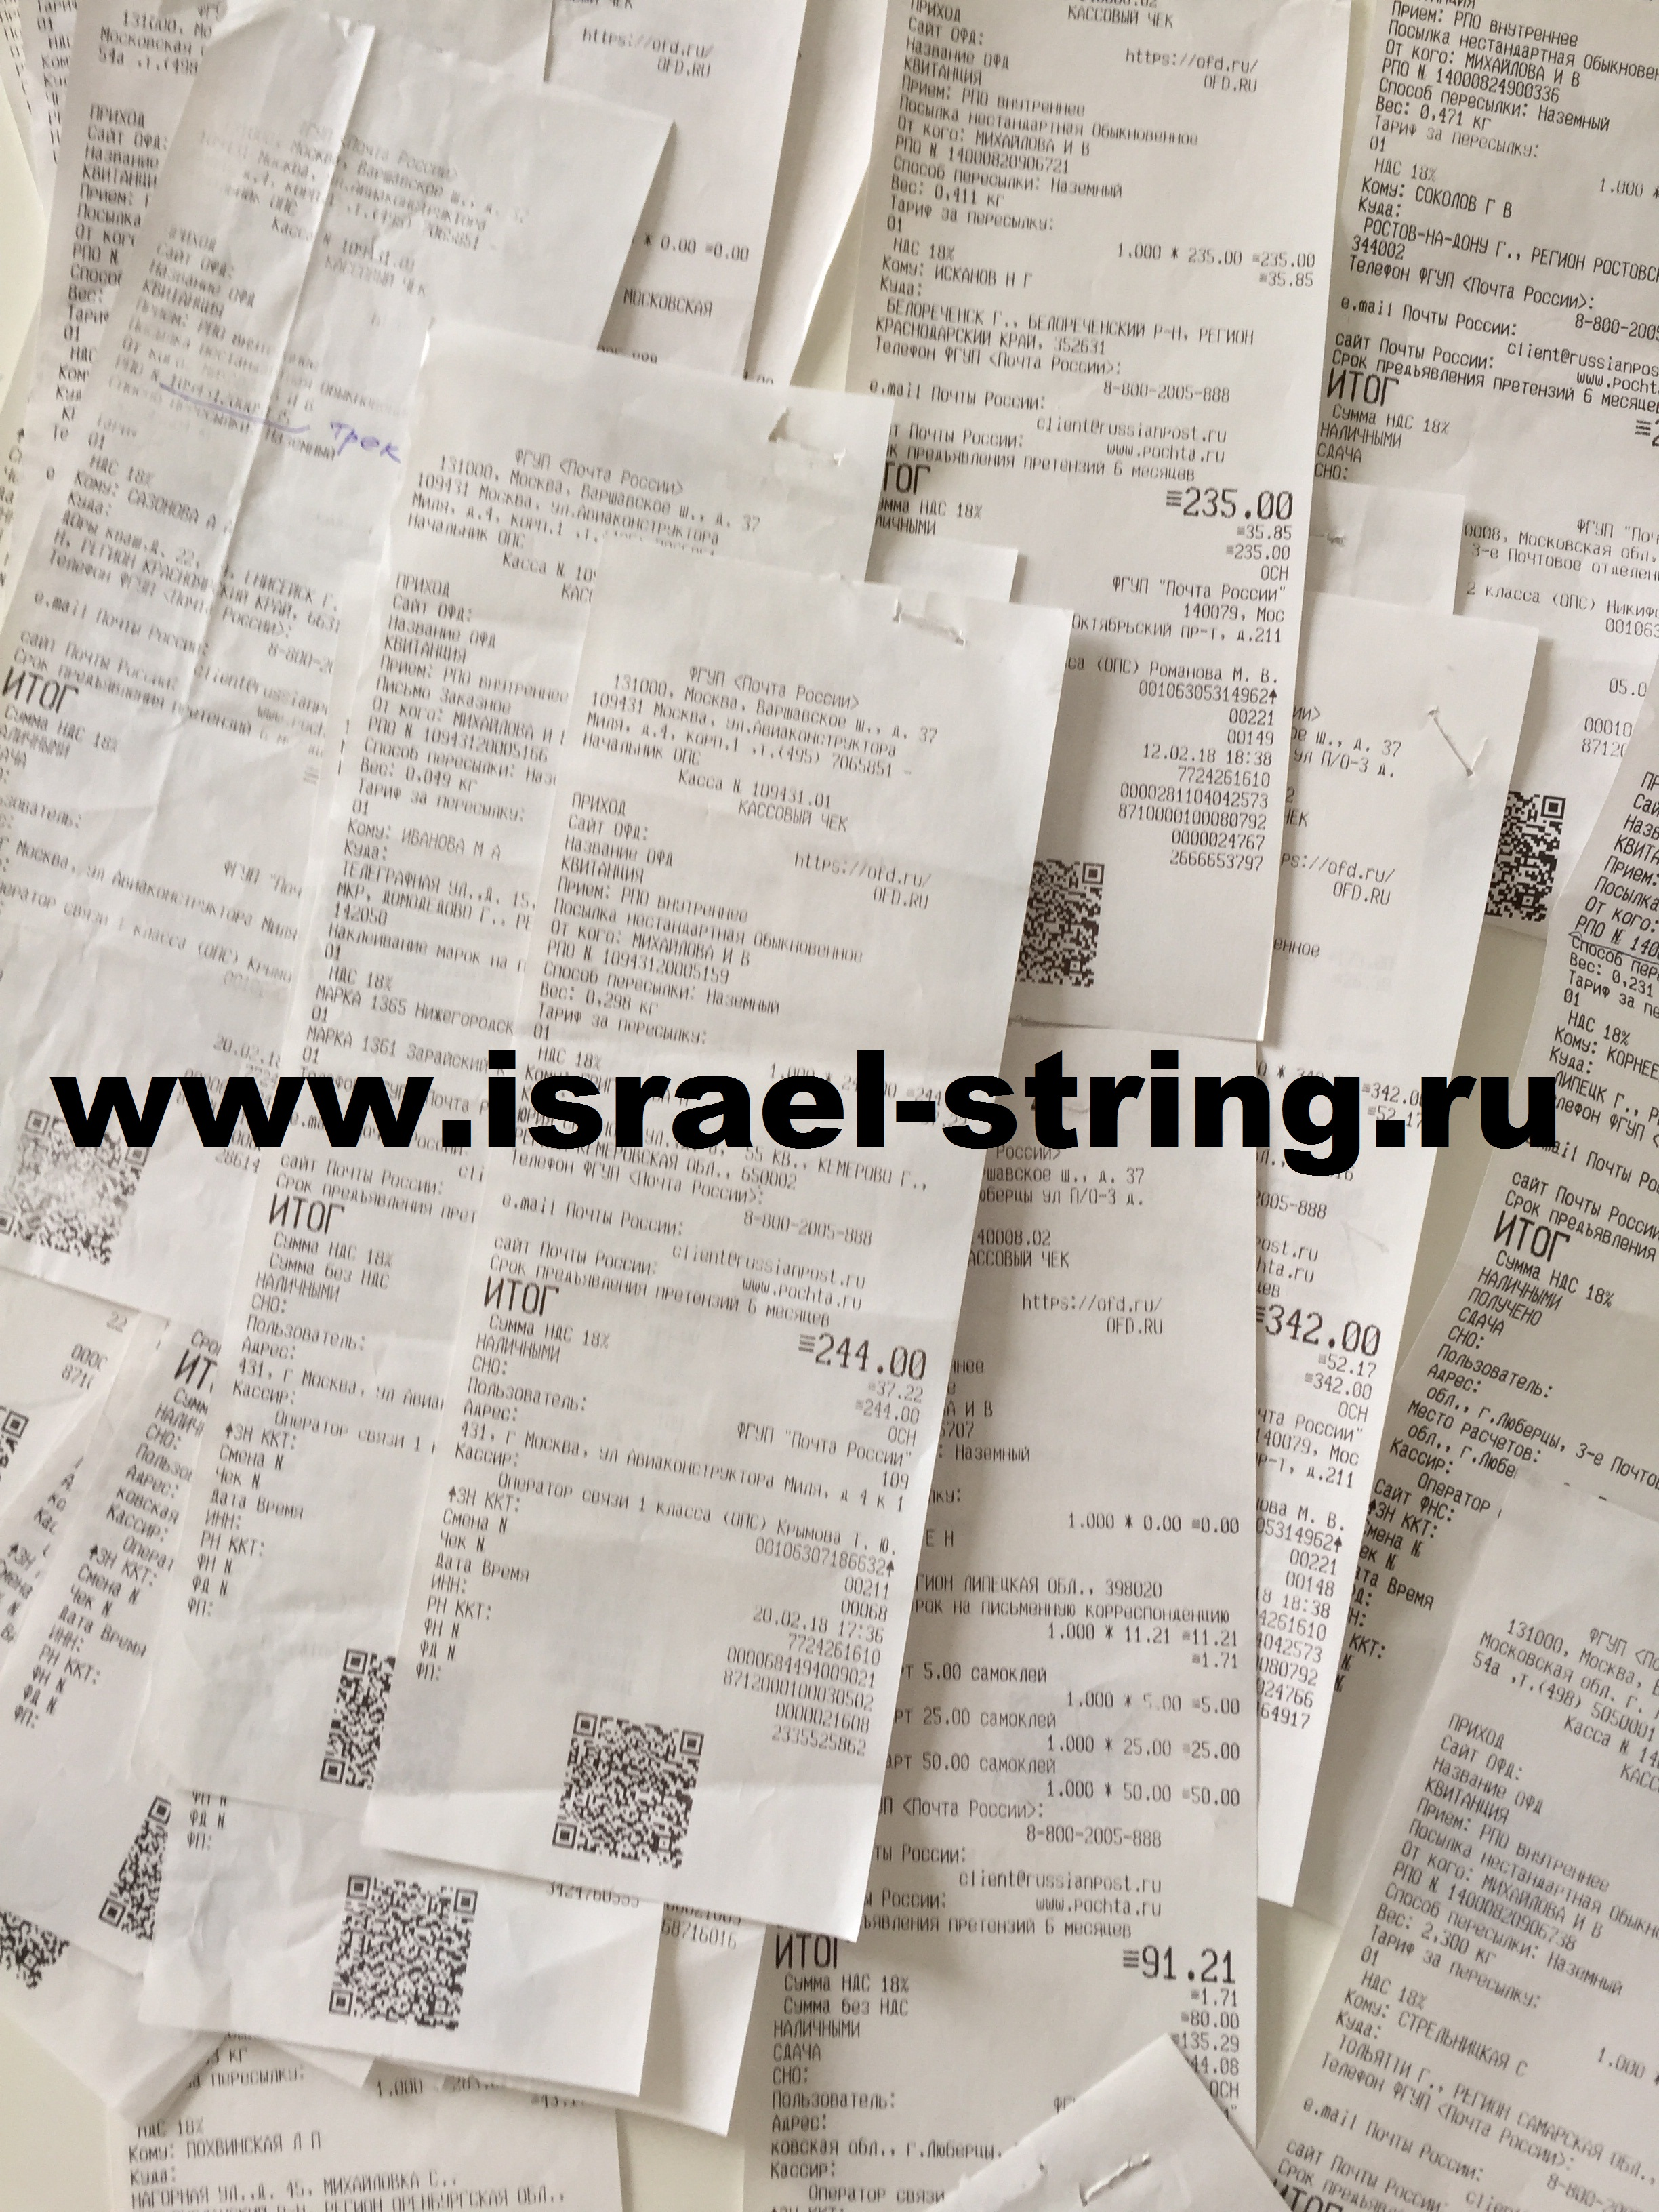 http://israel-string.ru/images/upload/IMG_45581.jpg